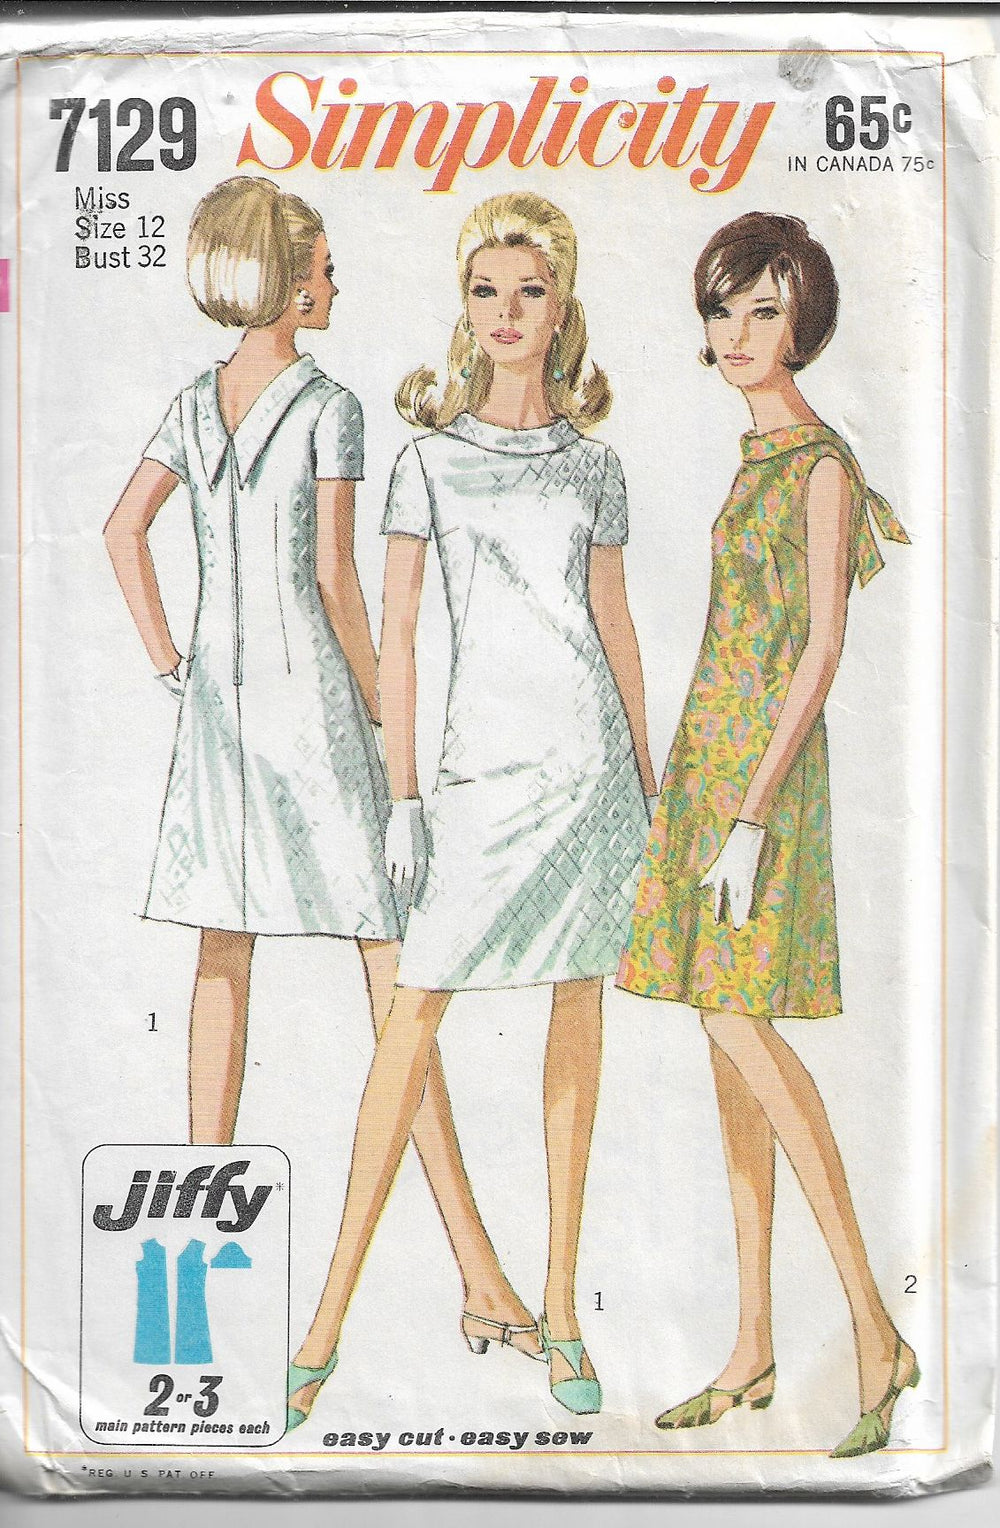 Simplicity 7129 Ladies A-Line Jiffy Dress Vintage Pattern 1960s - VintageStitching - Vintage Sewing Patterns